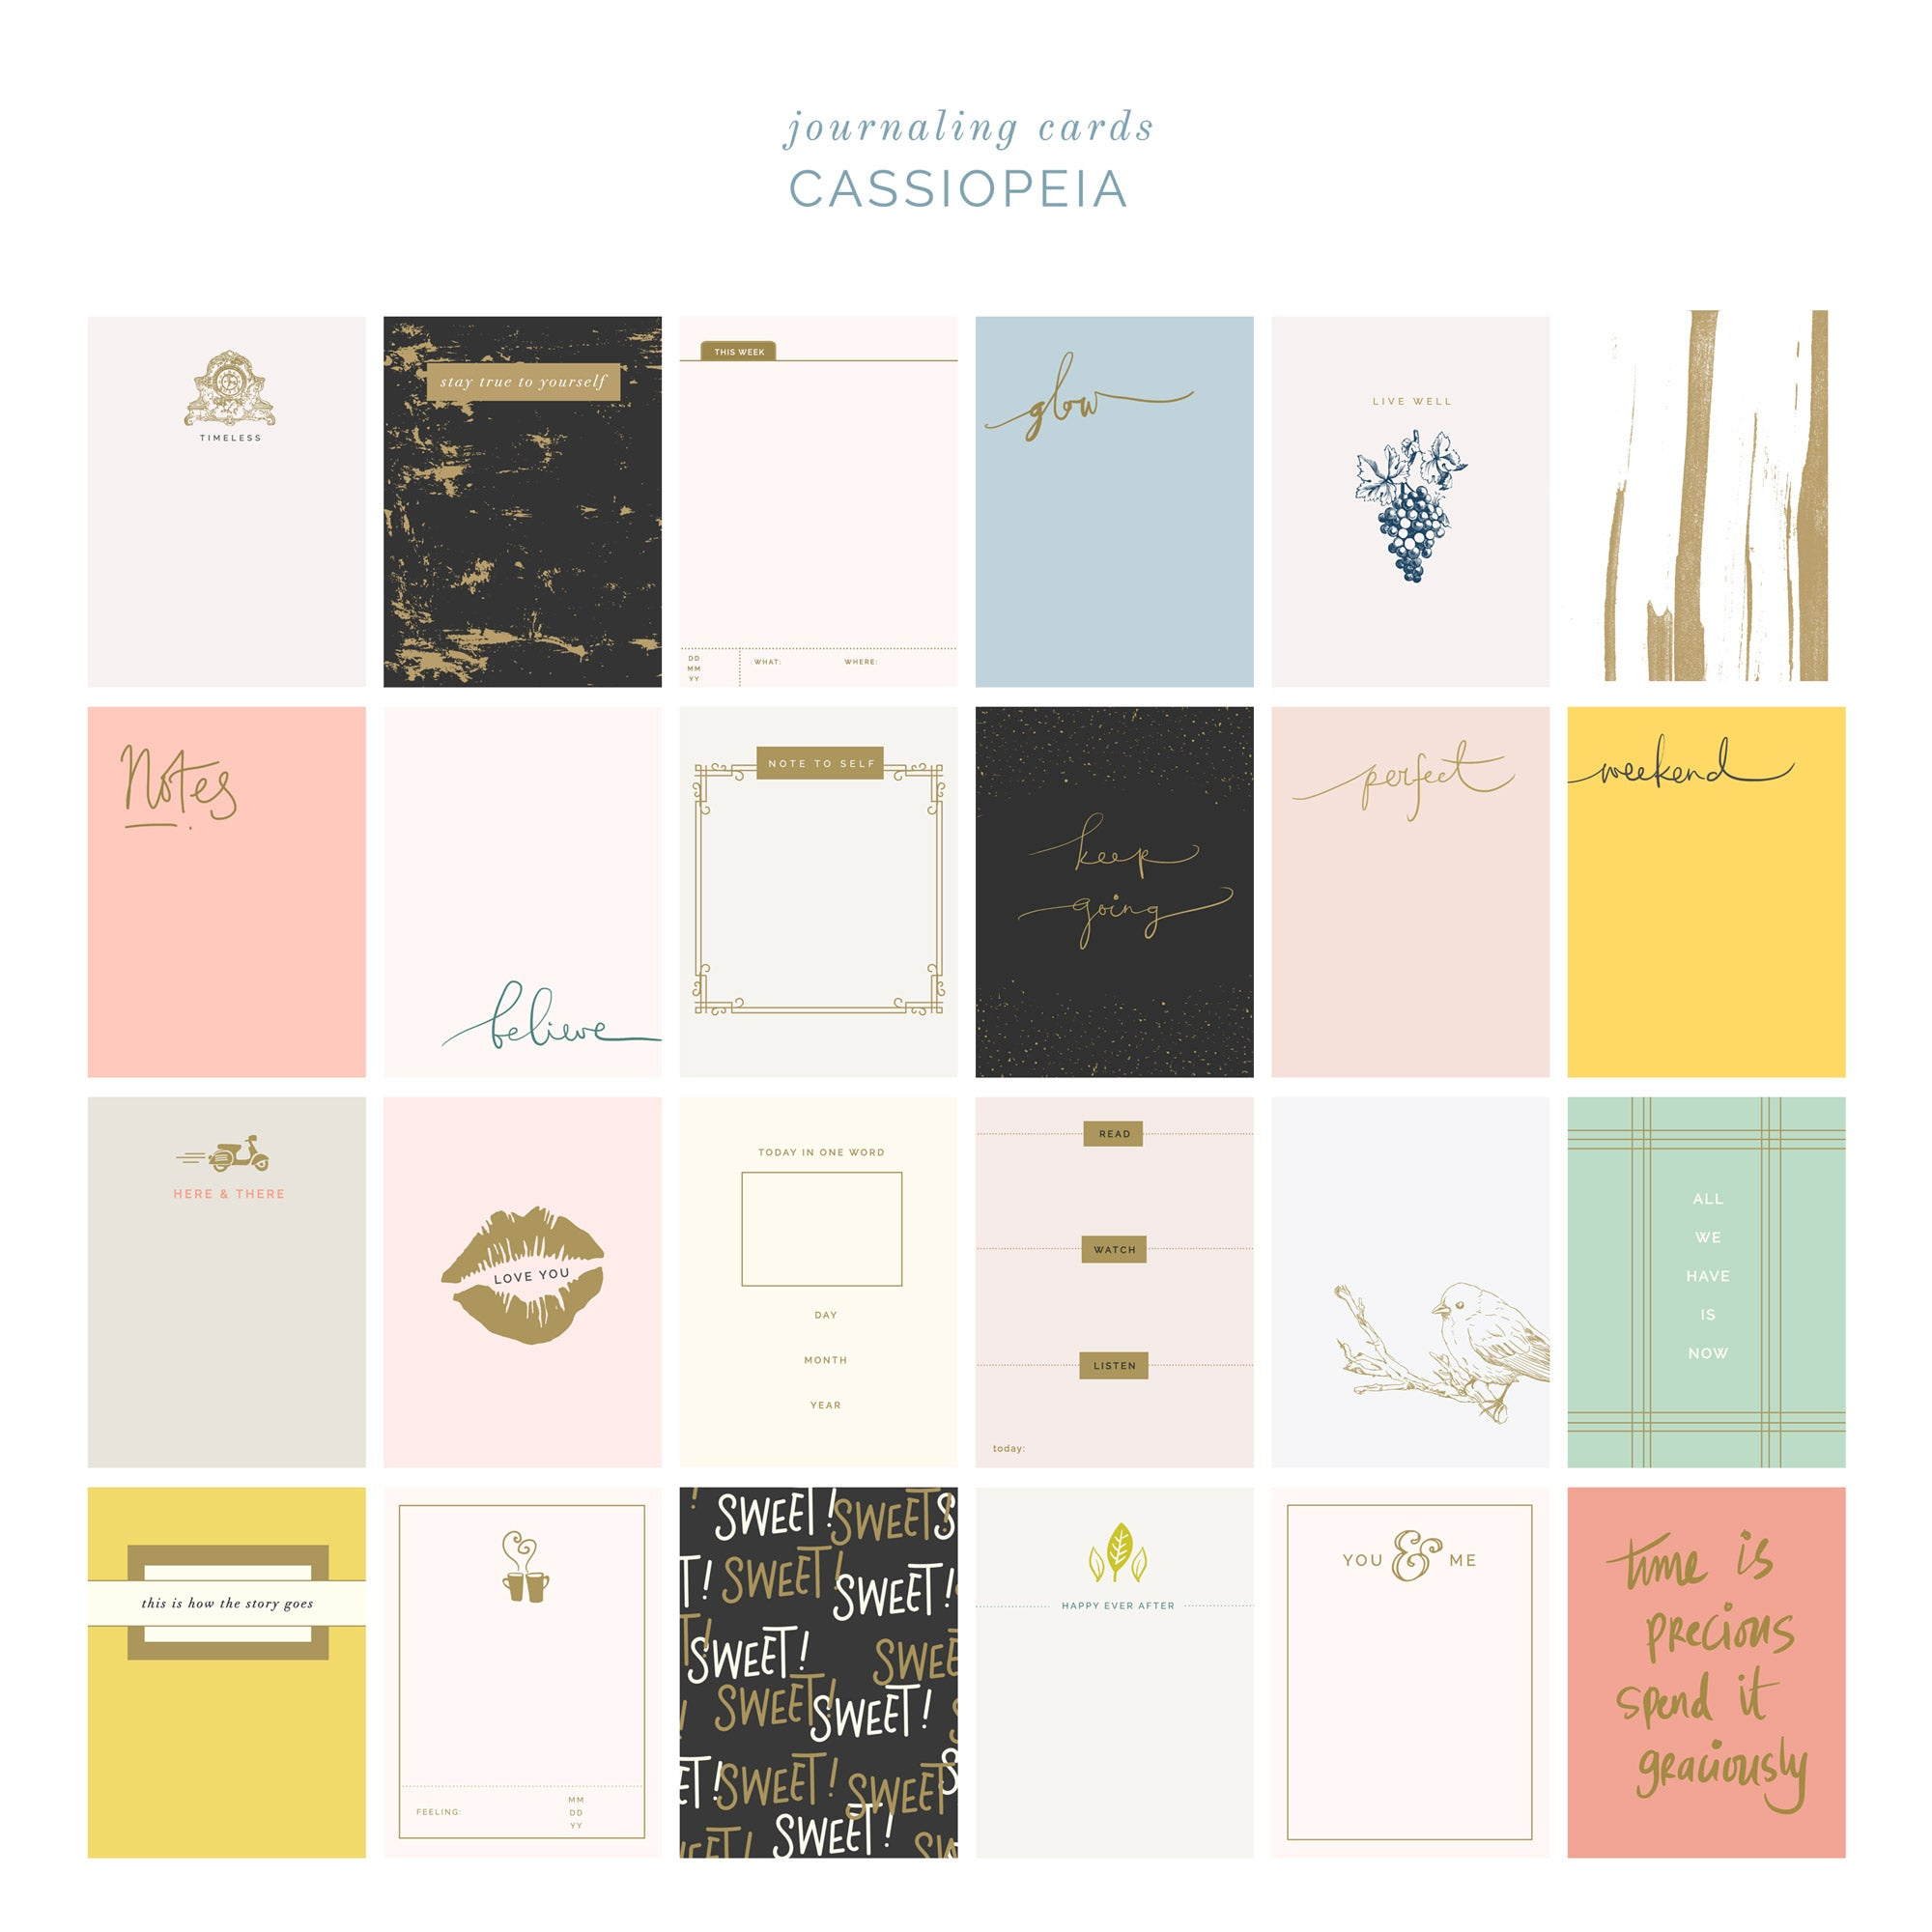 Cassiopeia Journal Cards